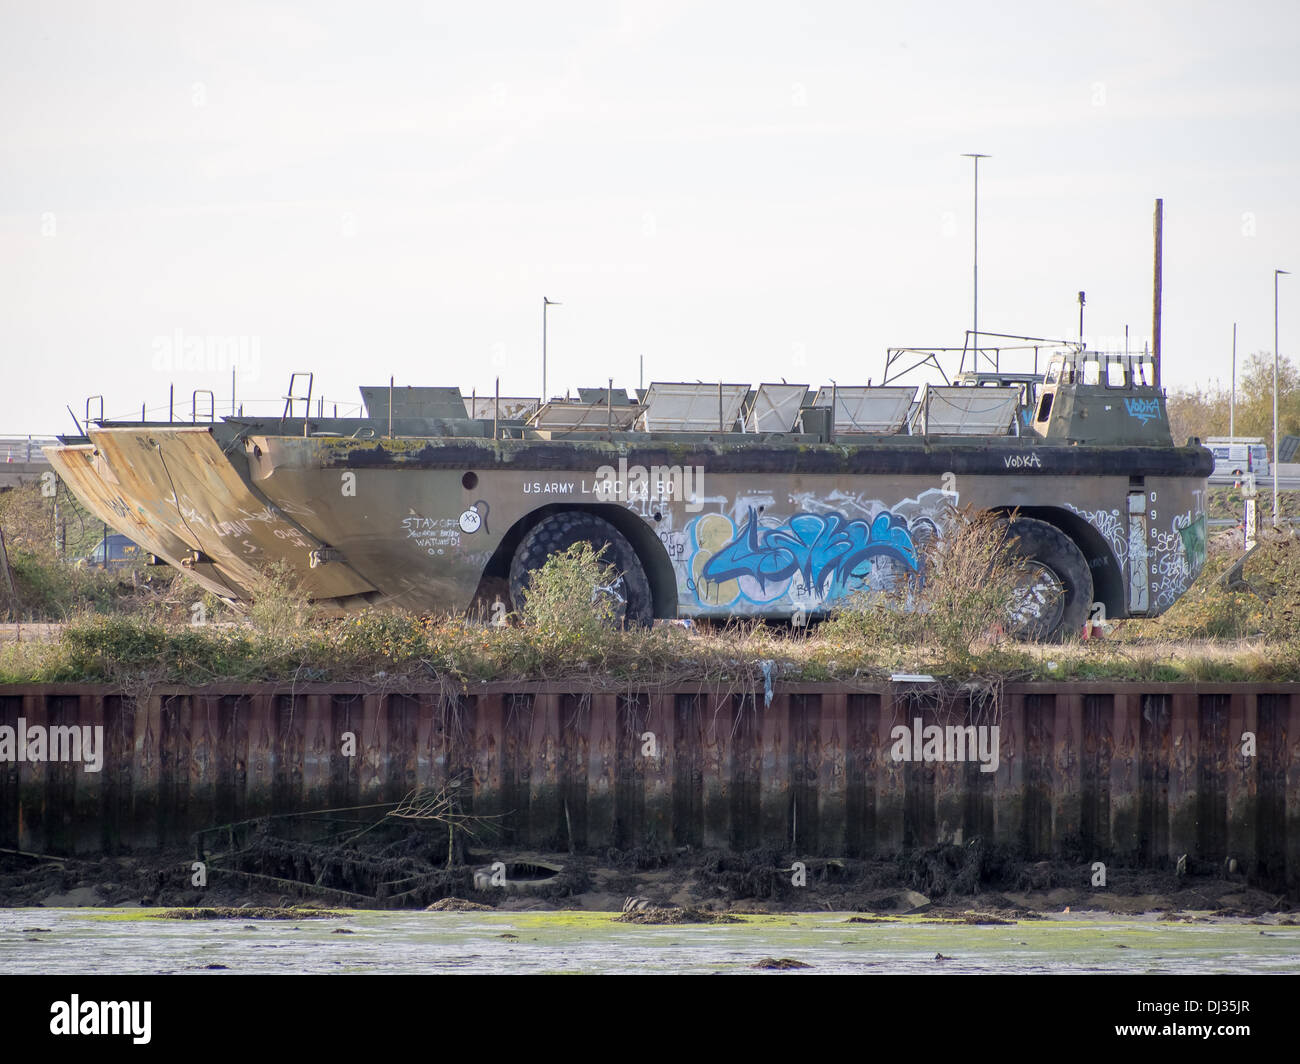 LARC-LX (Lighter, Amphibious Resupply, Cargo, 60 ton) with Graffiti sitting in Harry Pounds scrapyard, Portsmouth. - Stock Image